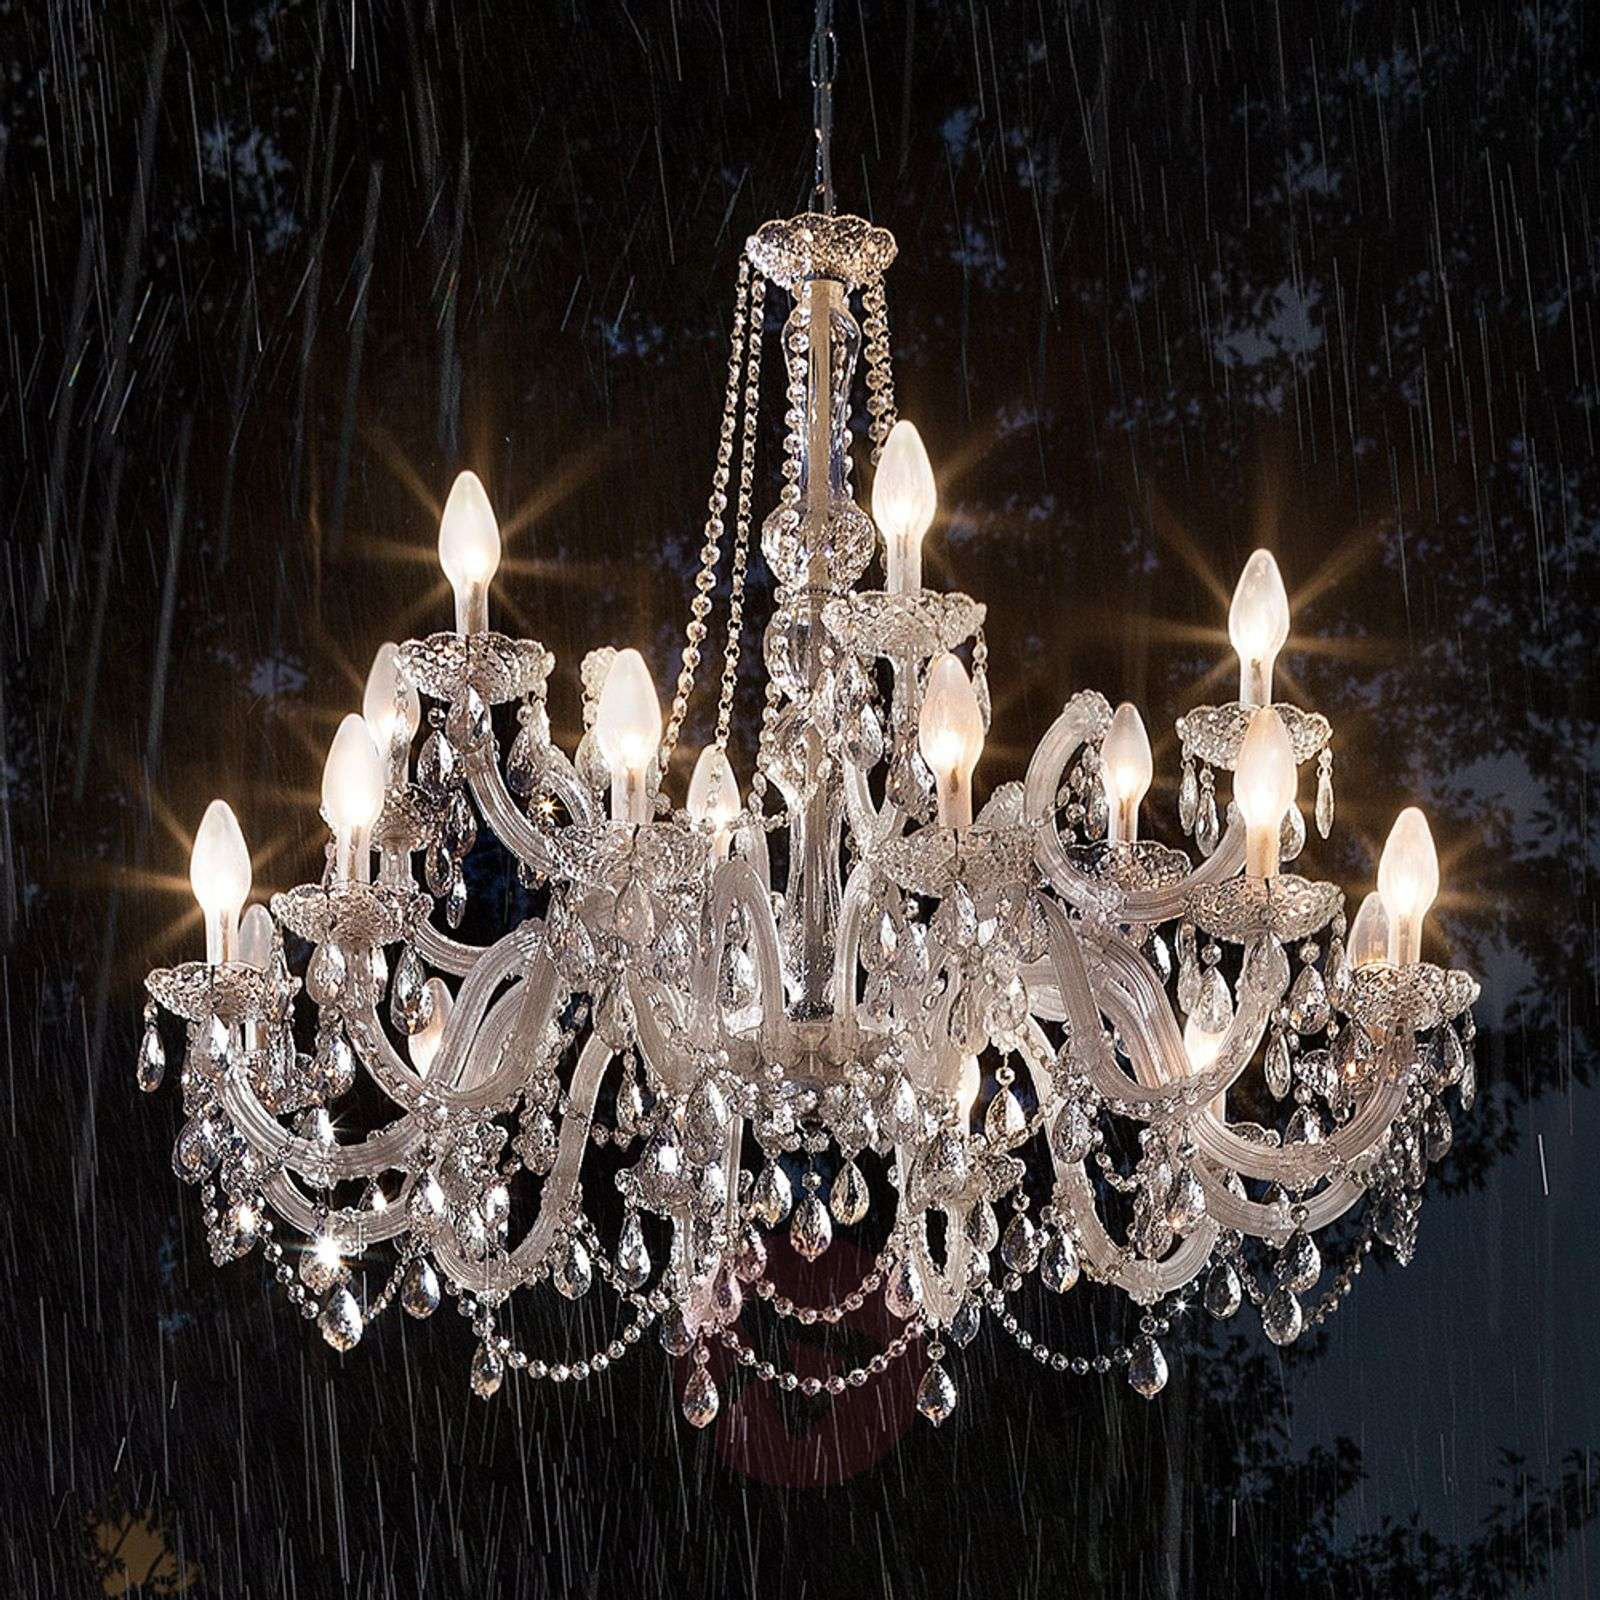 crystal unique marvelous chandelier fixtures chandeliers lights unusual top lamps lounge light lighting design ceiling white